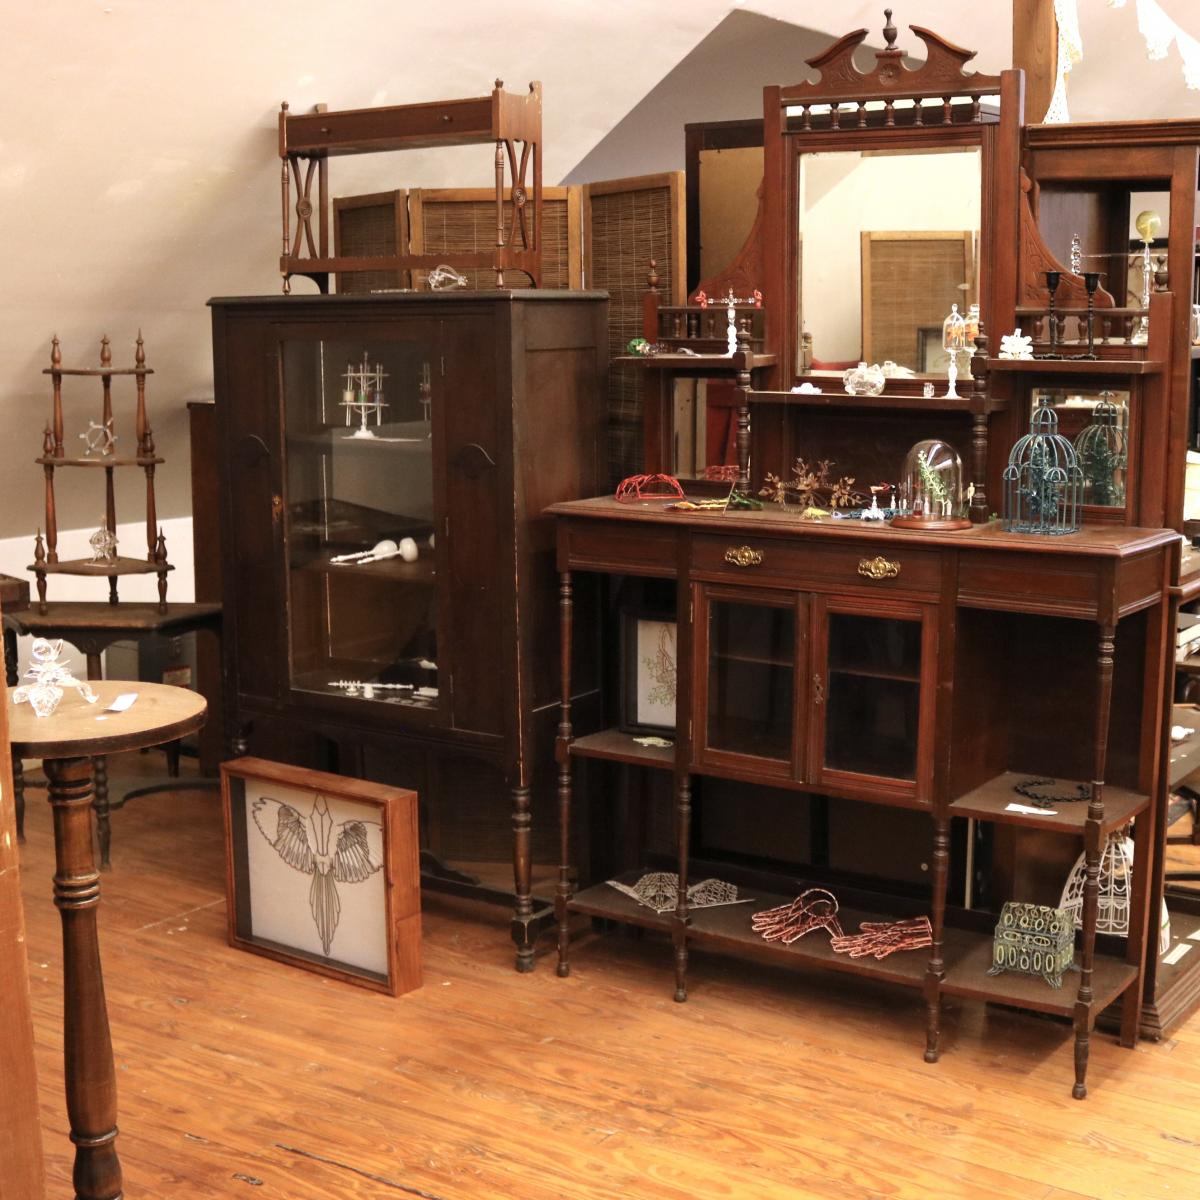 Shelves of furniture filled with objects used by the artist.